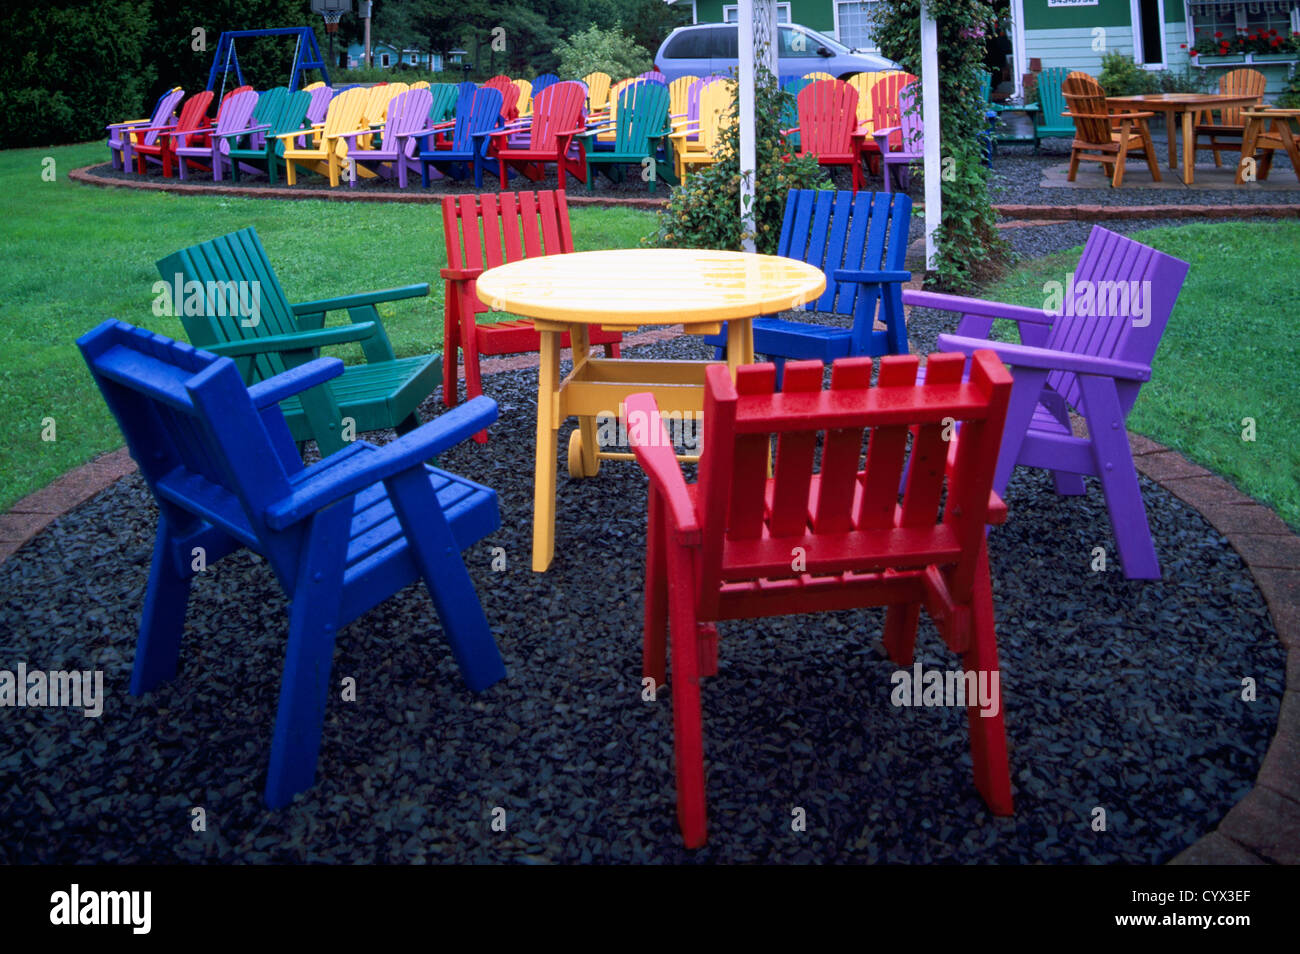 Painted Wood Patio Furniture nova scotia, canada - colorful painted wood patio furniture and